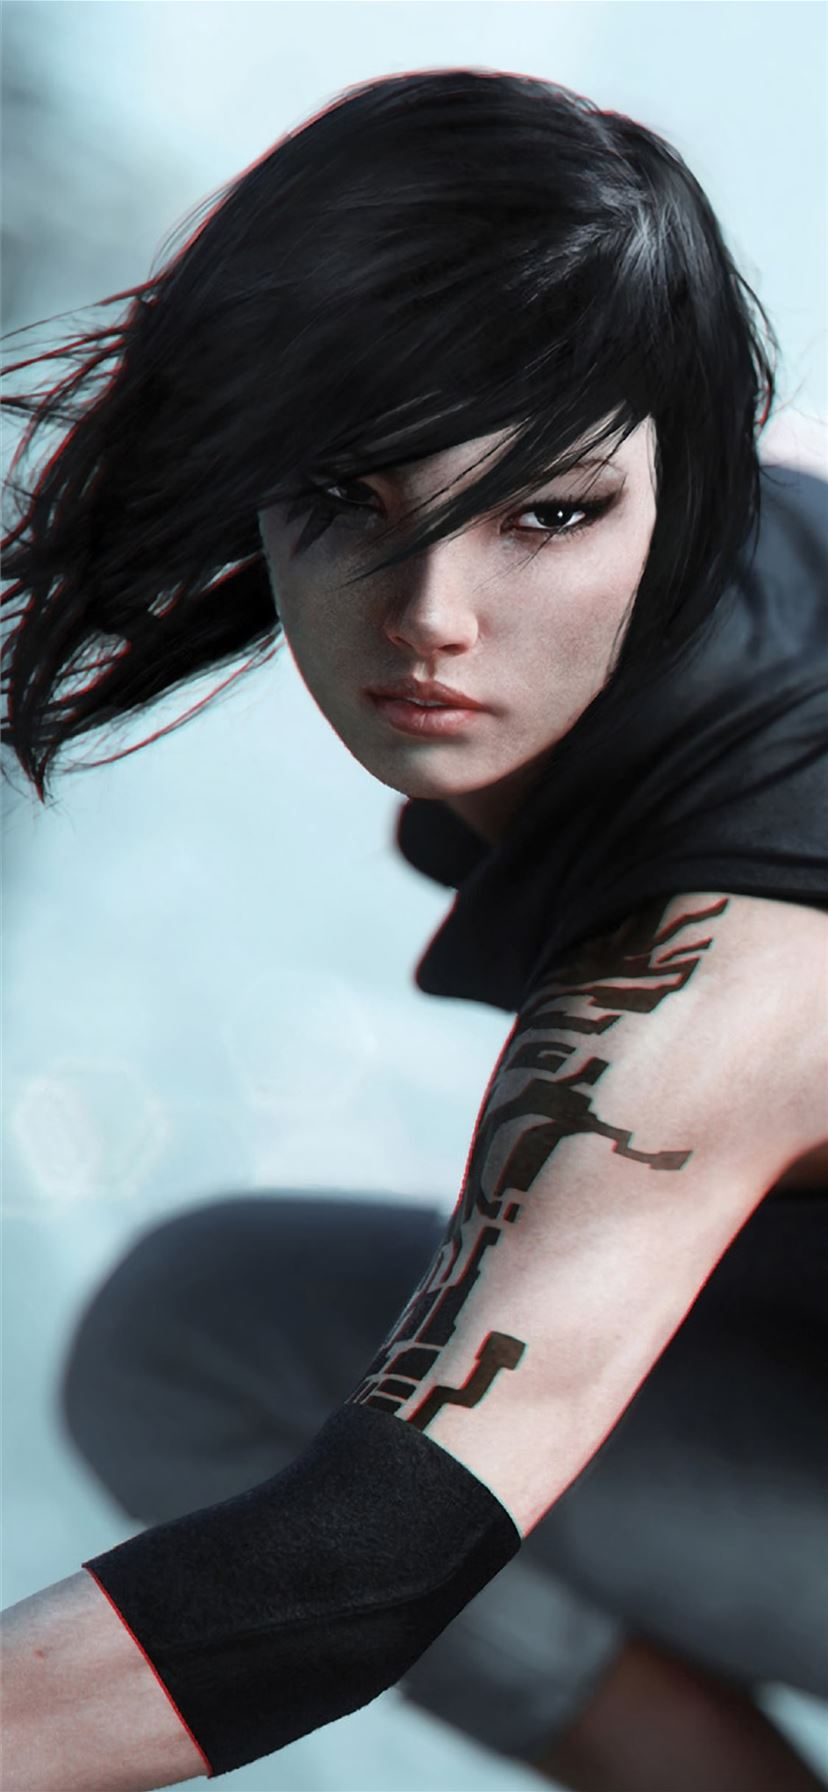 Mirrors Edge Catalyst Video Game 4k Iphone 11 Wallpapers Free Download